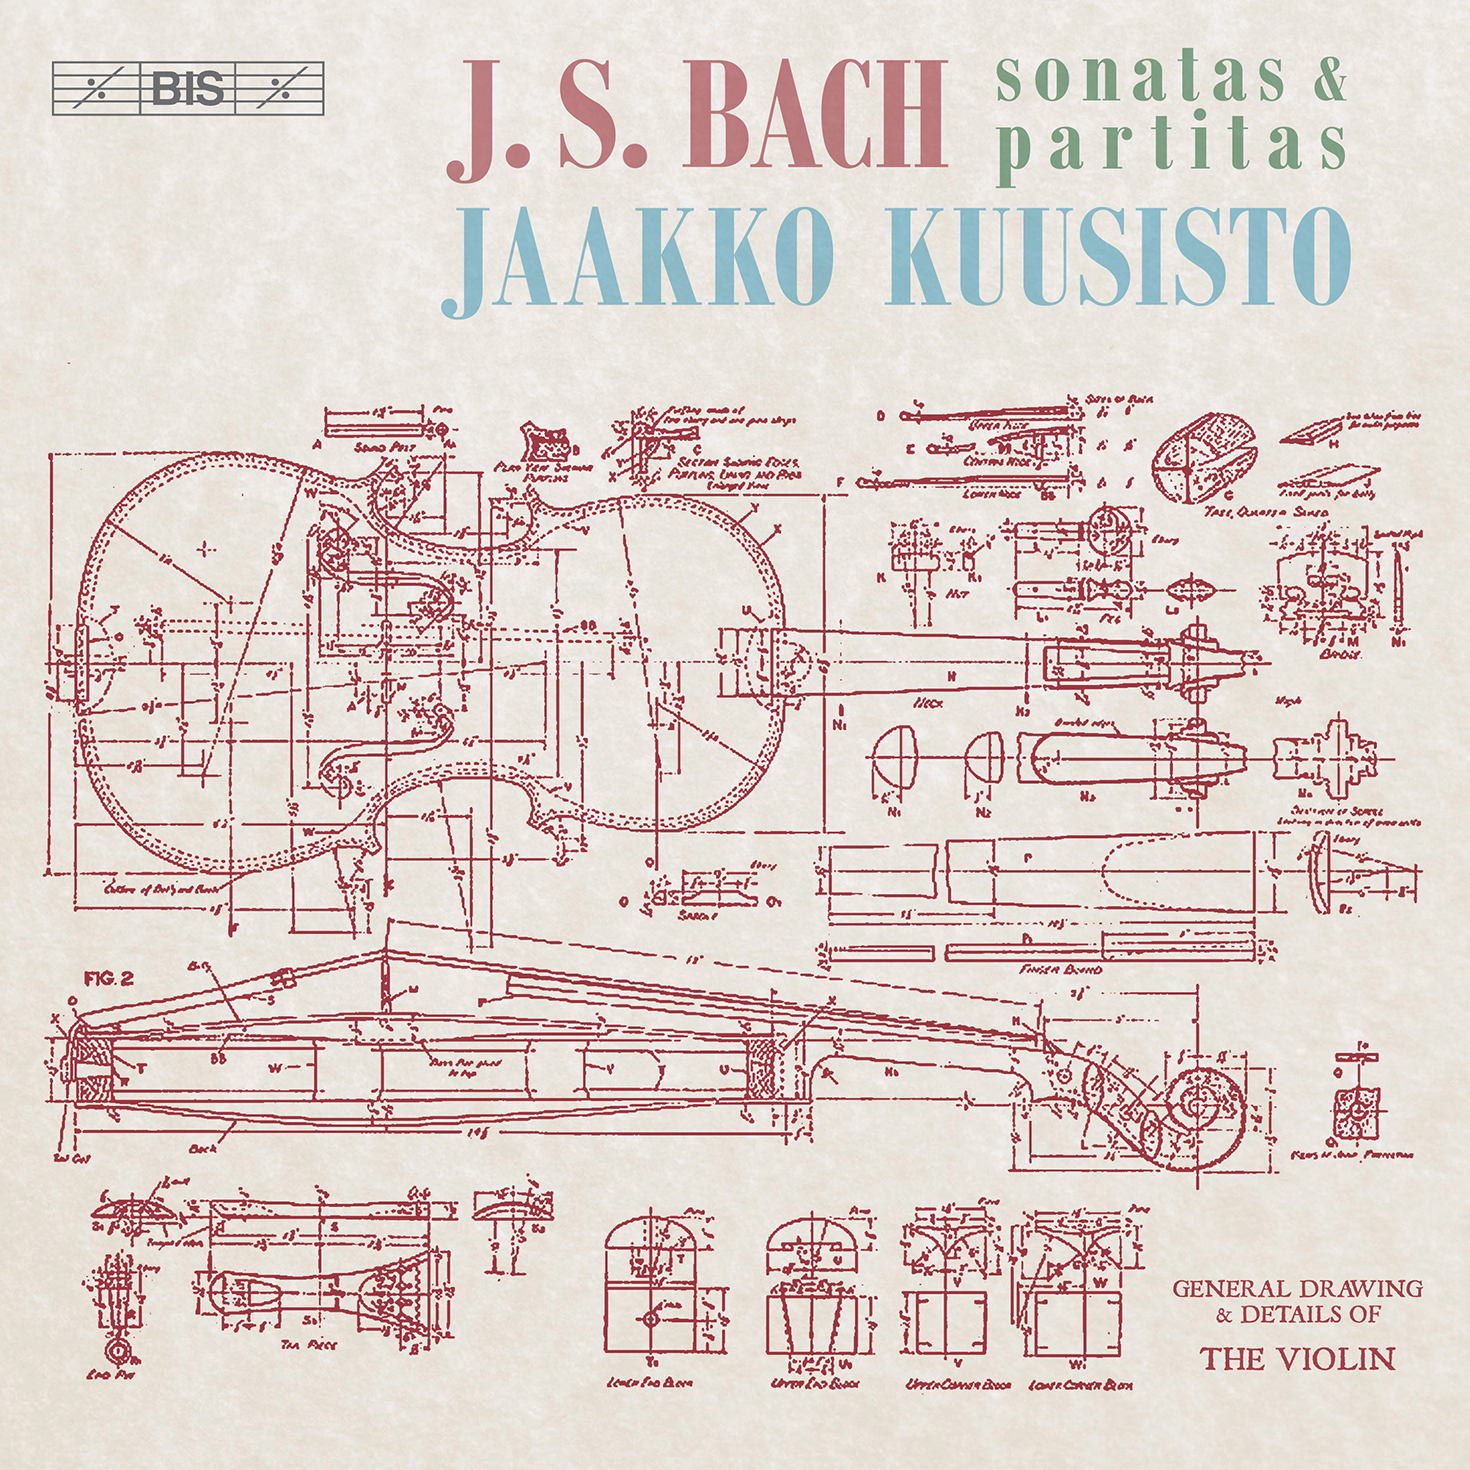 J.S. Bach / Sonatas and Partitas for Solo Violin  (Complete) // Jaakko Kuusisto